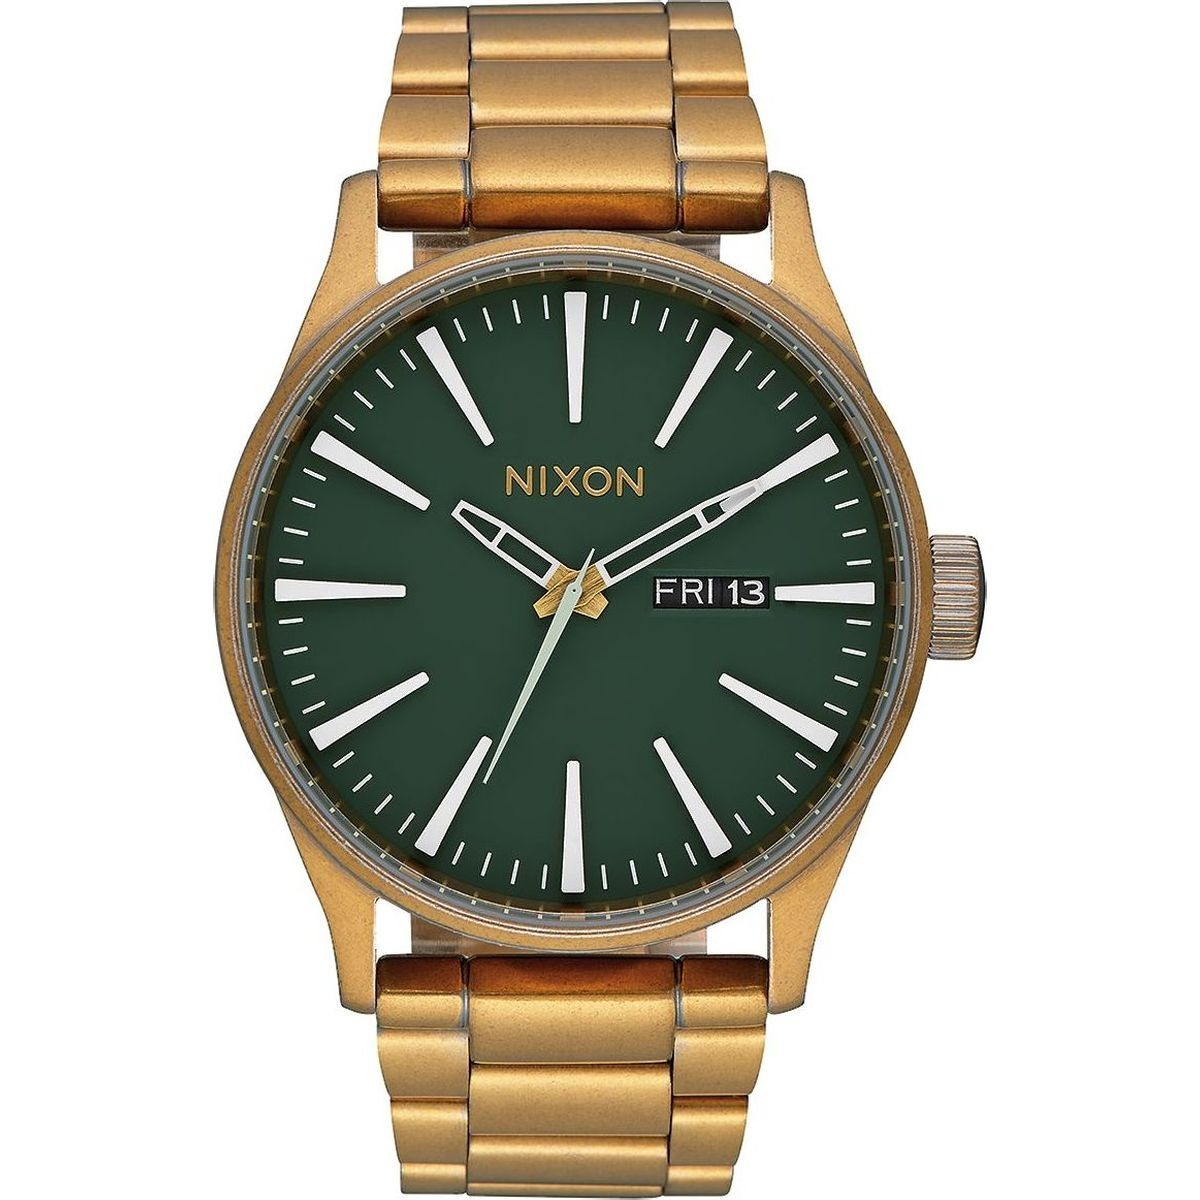 watch nixon pointe library of sandi sentry collections virtual watches